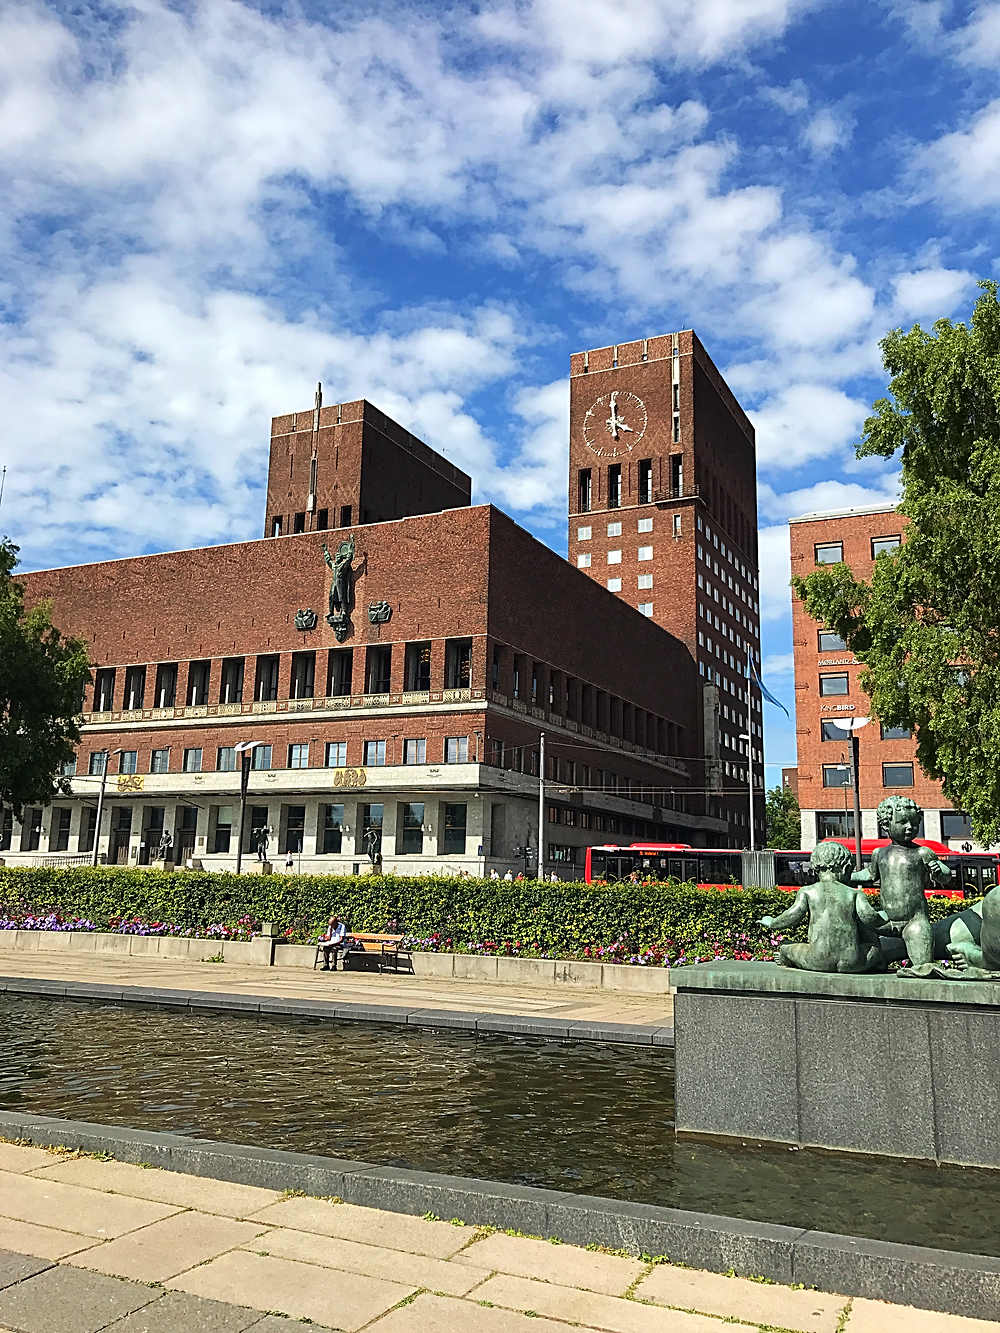 City Hall in Oslo, Norway